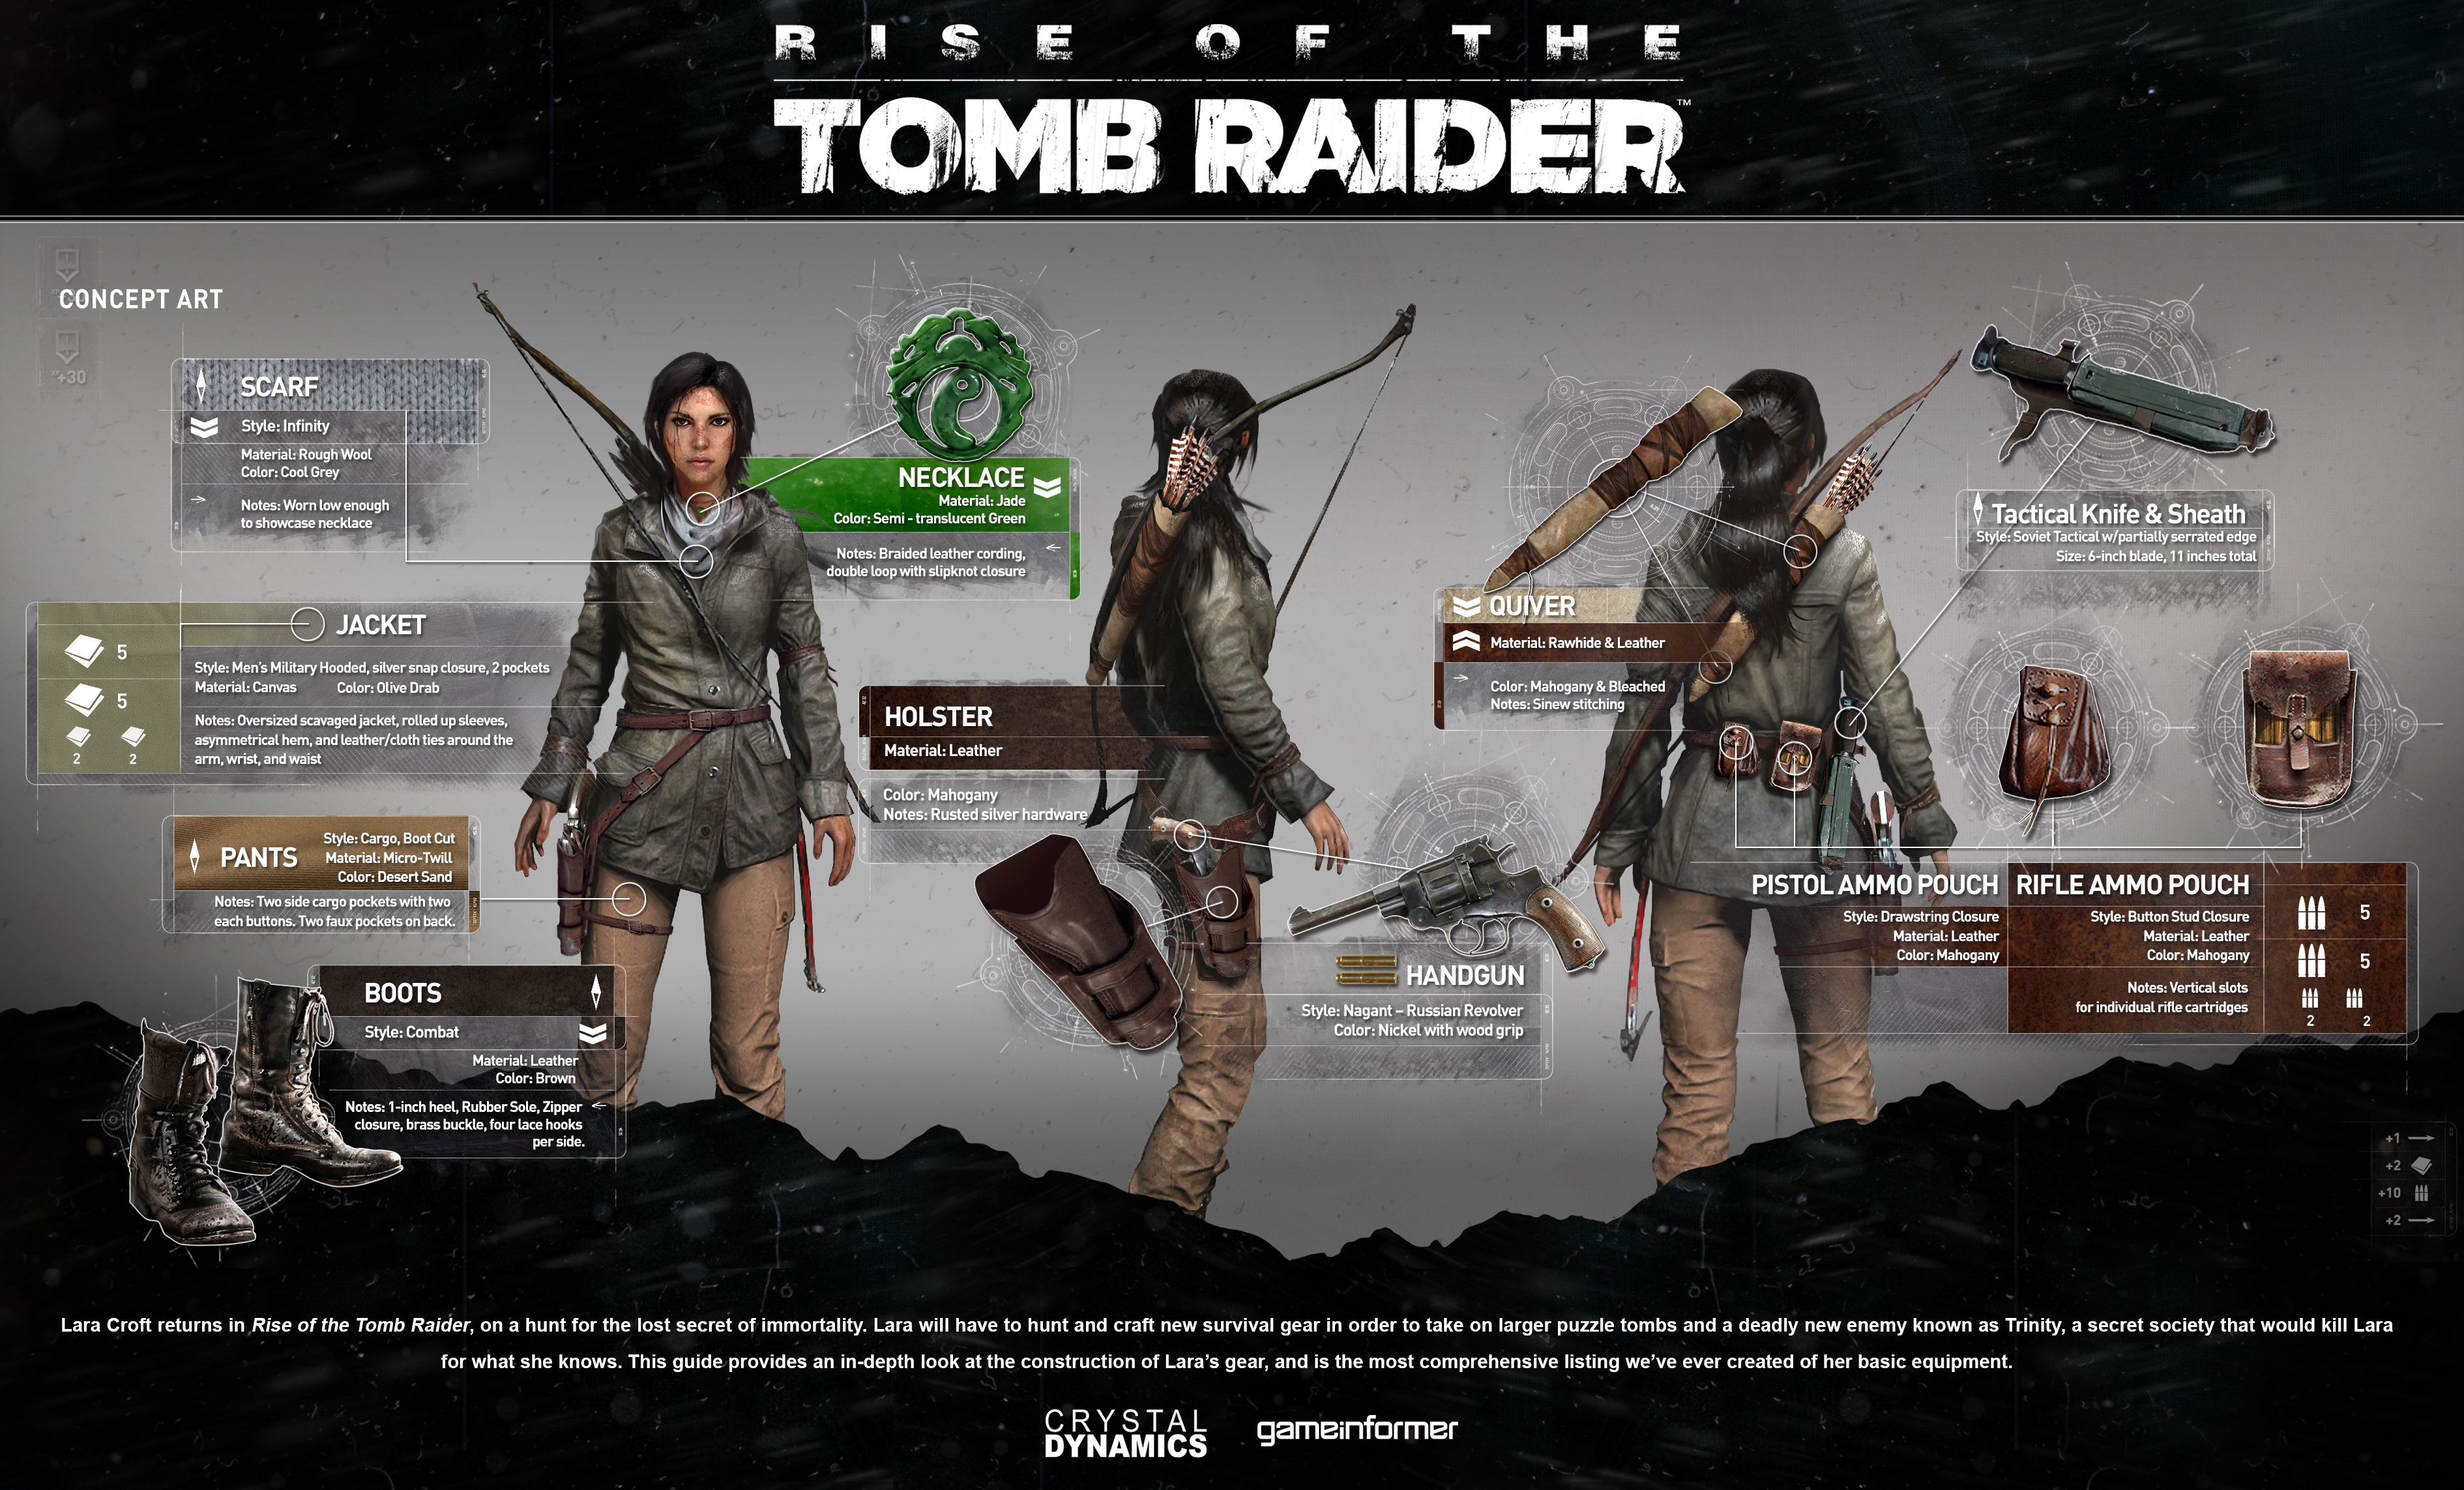 "A Beginner's Guide to ""Rise of the Tomb Raider"" Cosplay - http://archaeologyoftombraider.com/2015/02/23/a-beginners-guide-to-rise-of-the-tomb-raider-cosplay/"